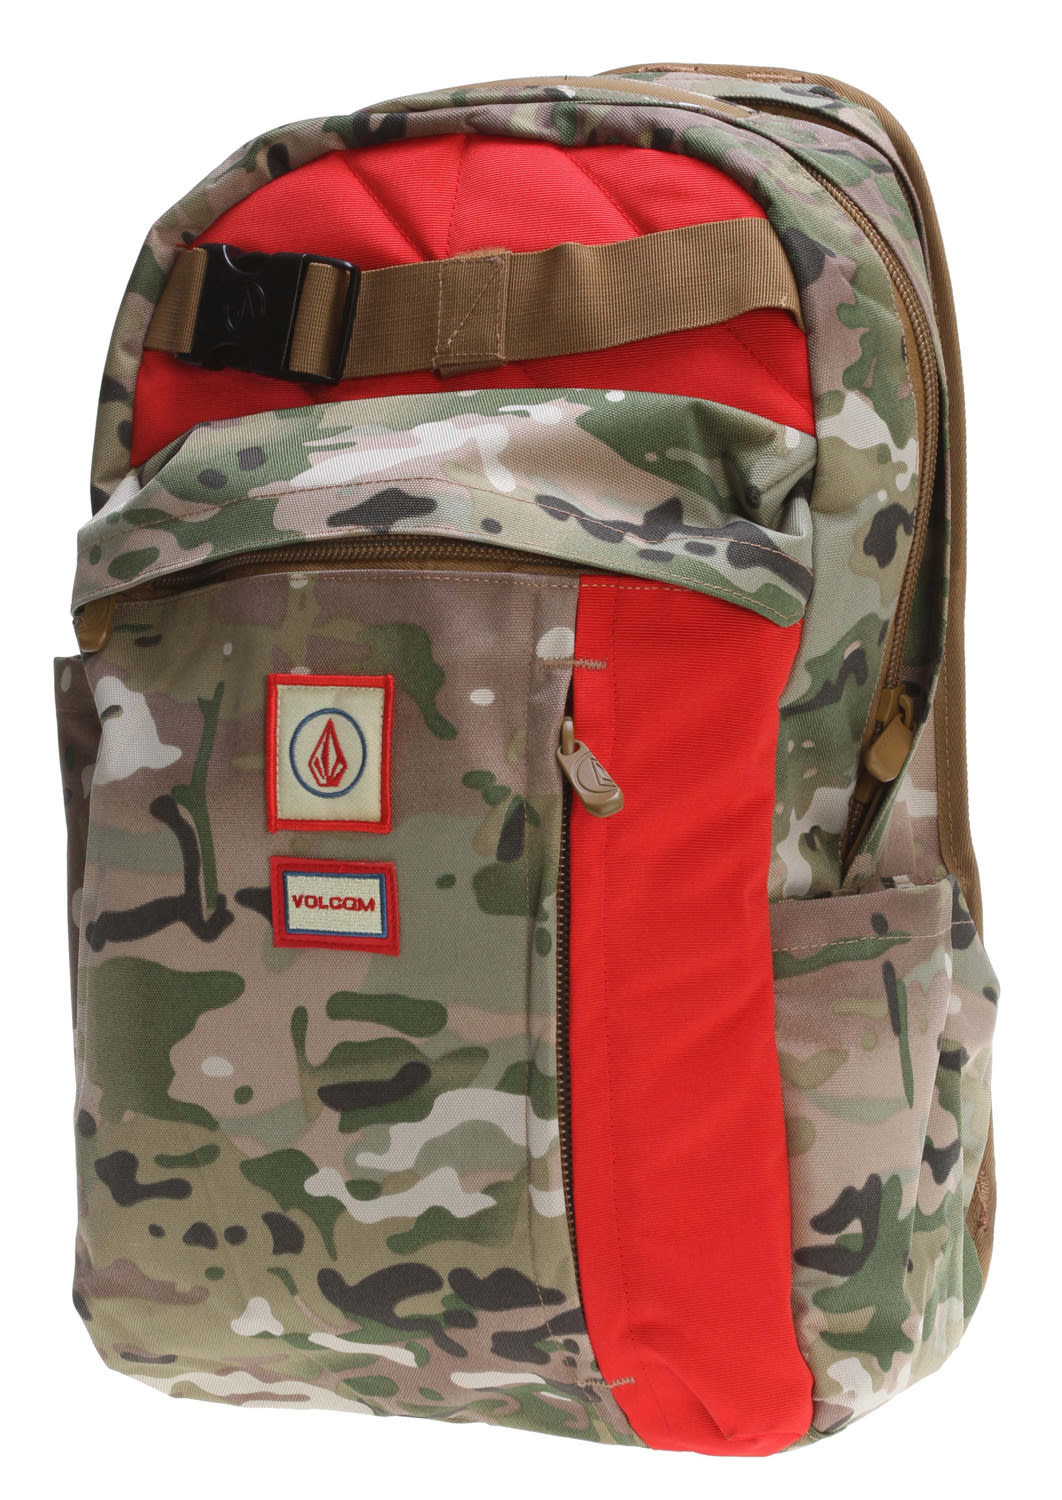 Volcom Propel Backpack Camouflage